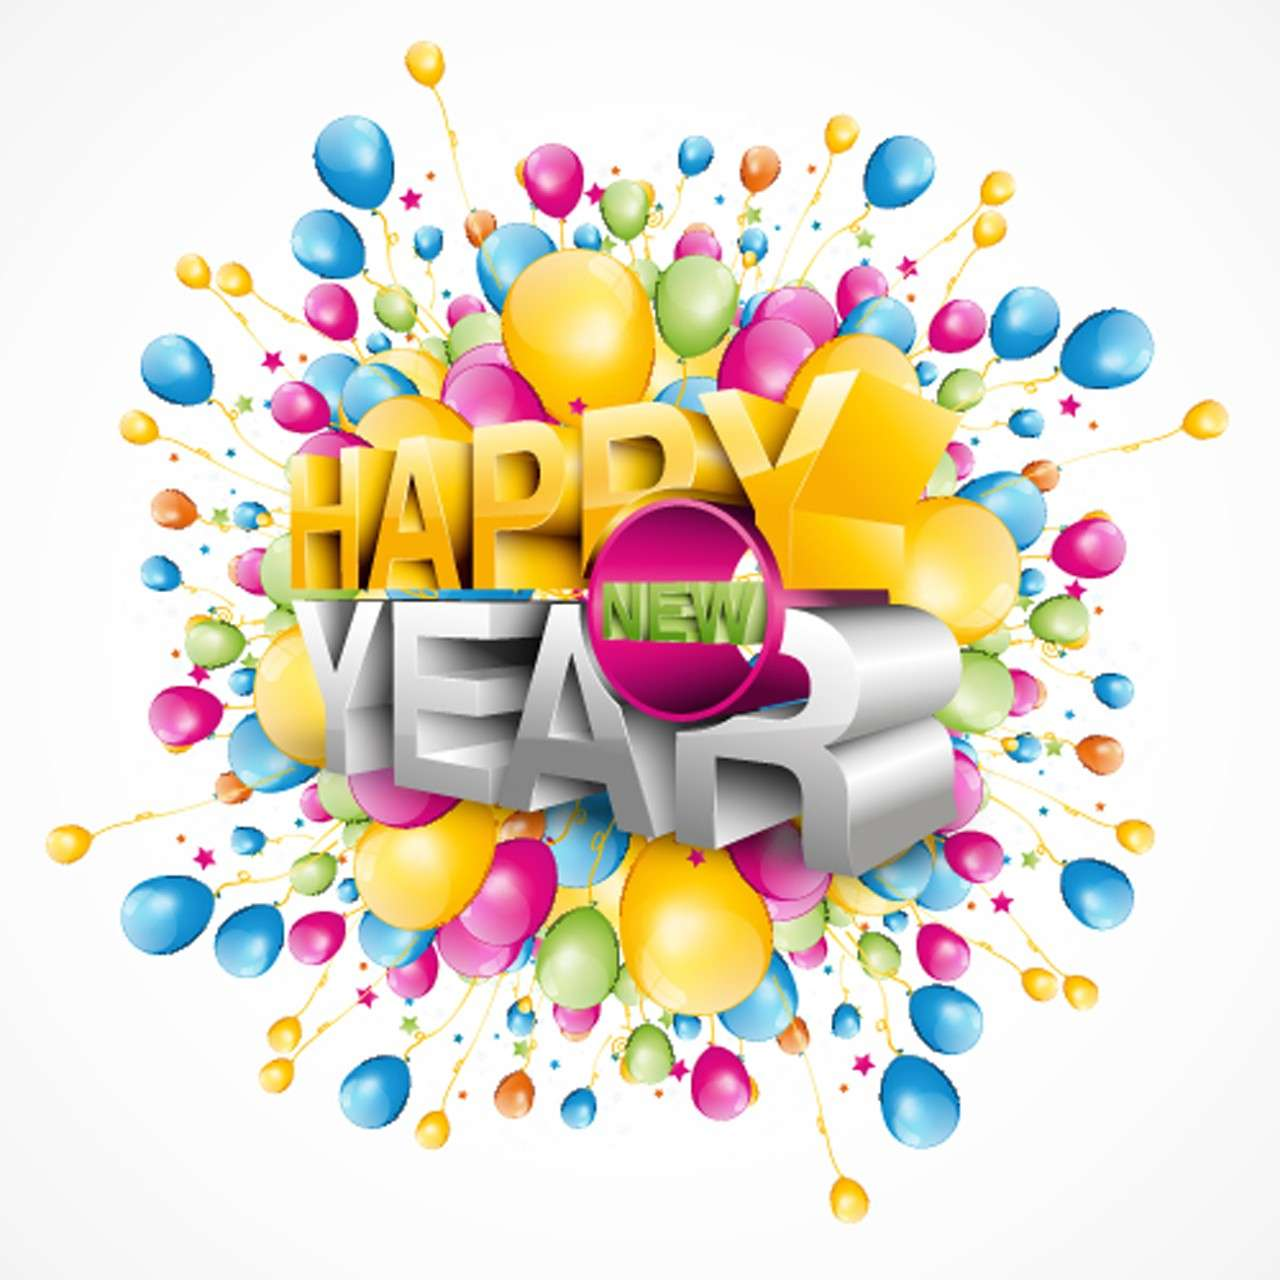 Happy new year wishes 2017 happy new year pictures for whatsapp dps kristyandbryce Image collections